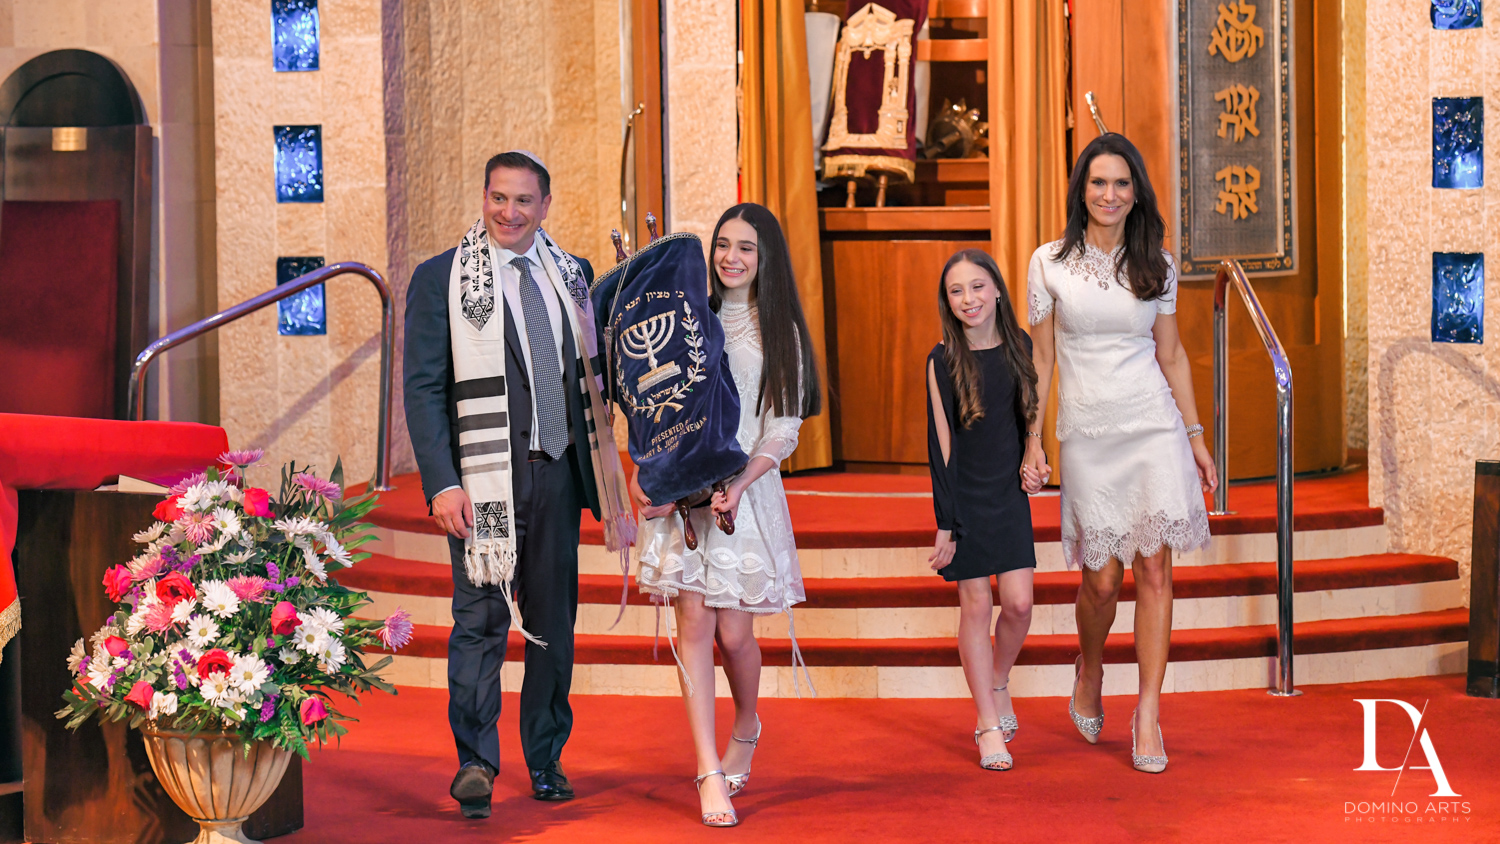 fa,ily at Luxury Celebrity Bat Mitzvah at Four Seasons Hotel Miami by Domino Arts Photography